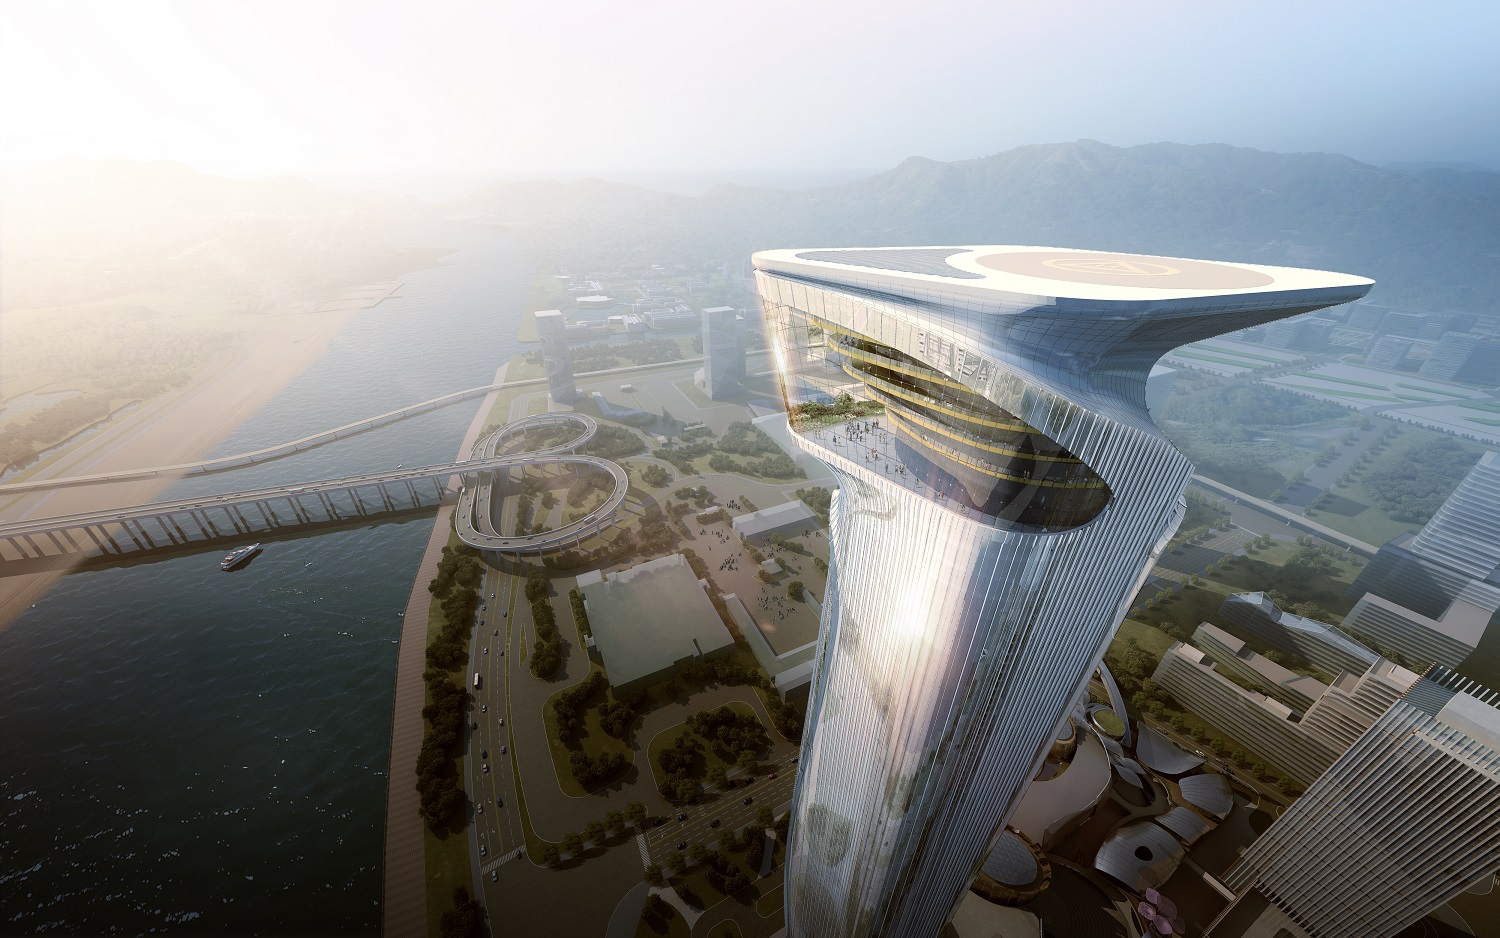 Zhuhai Hengqin Headquarters Complex (Phase II), Zhuhai, China